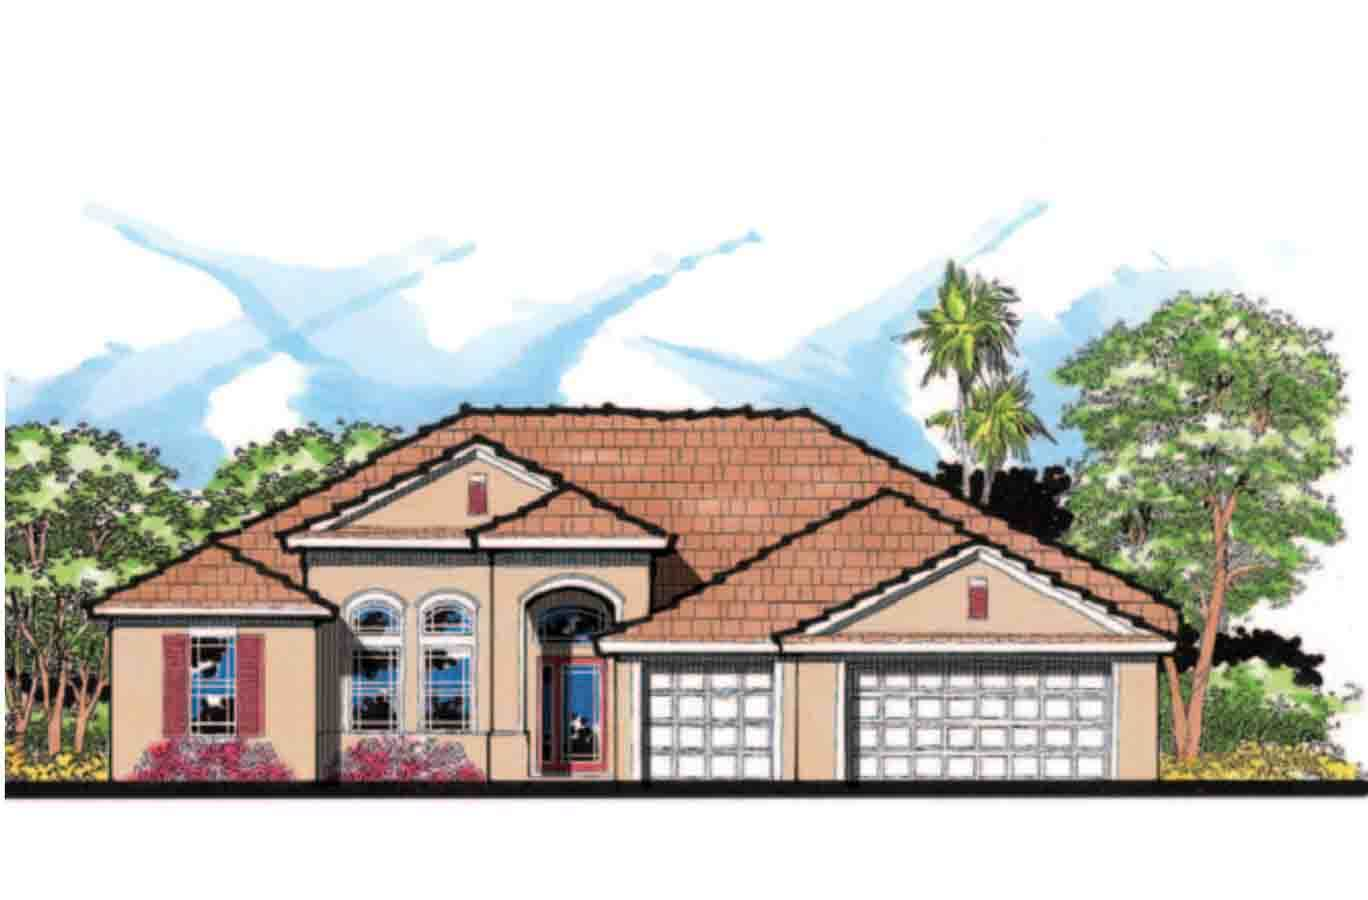 Floor Plans,2,501 SQ FT TO 3,000 SQ FT,1074